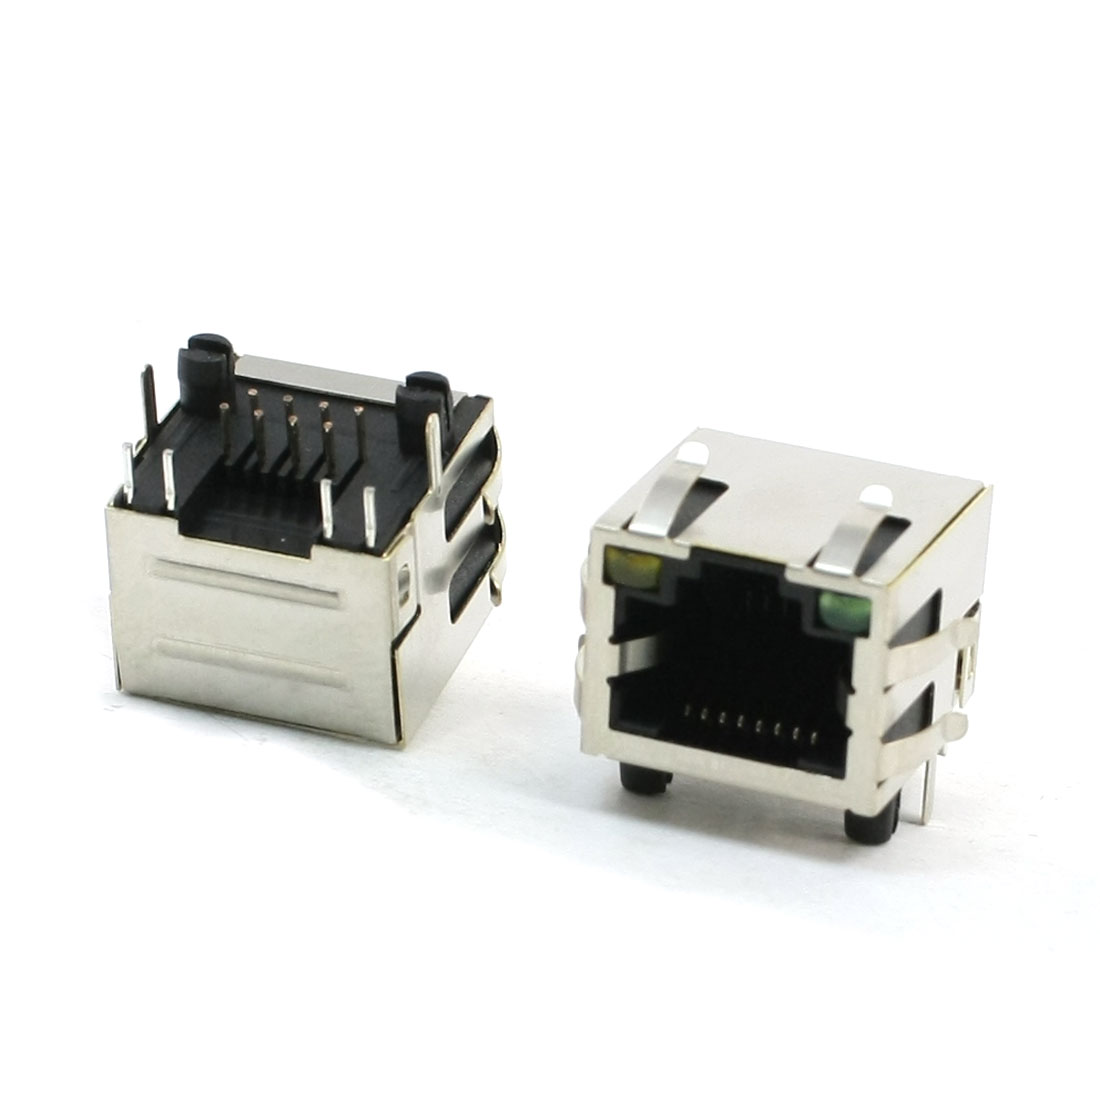 2 Pcs 2 LED 12P 8P8C RJ45 PCB Plug-in Type Jack Socket 17mmx16mmx16mm